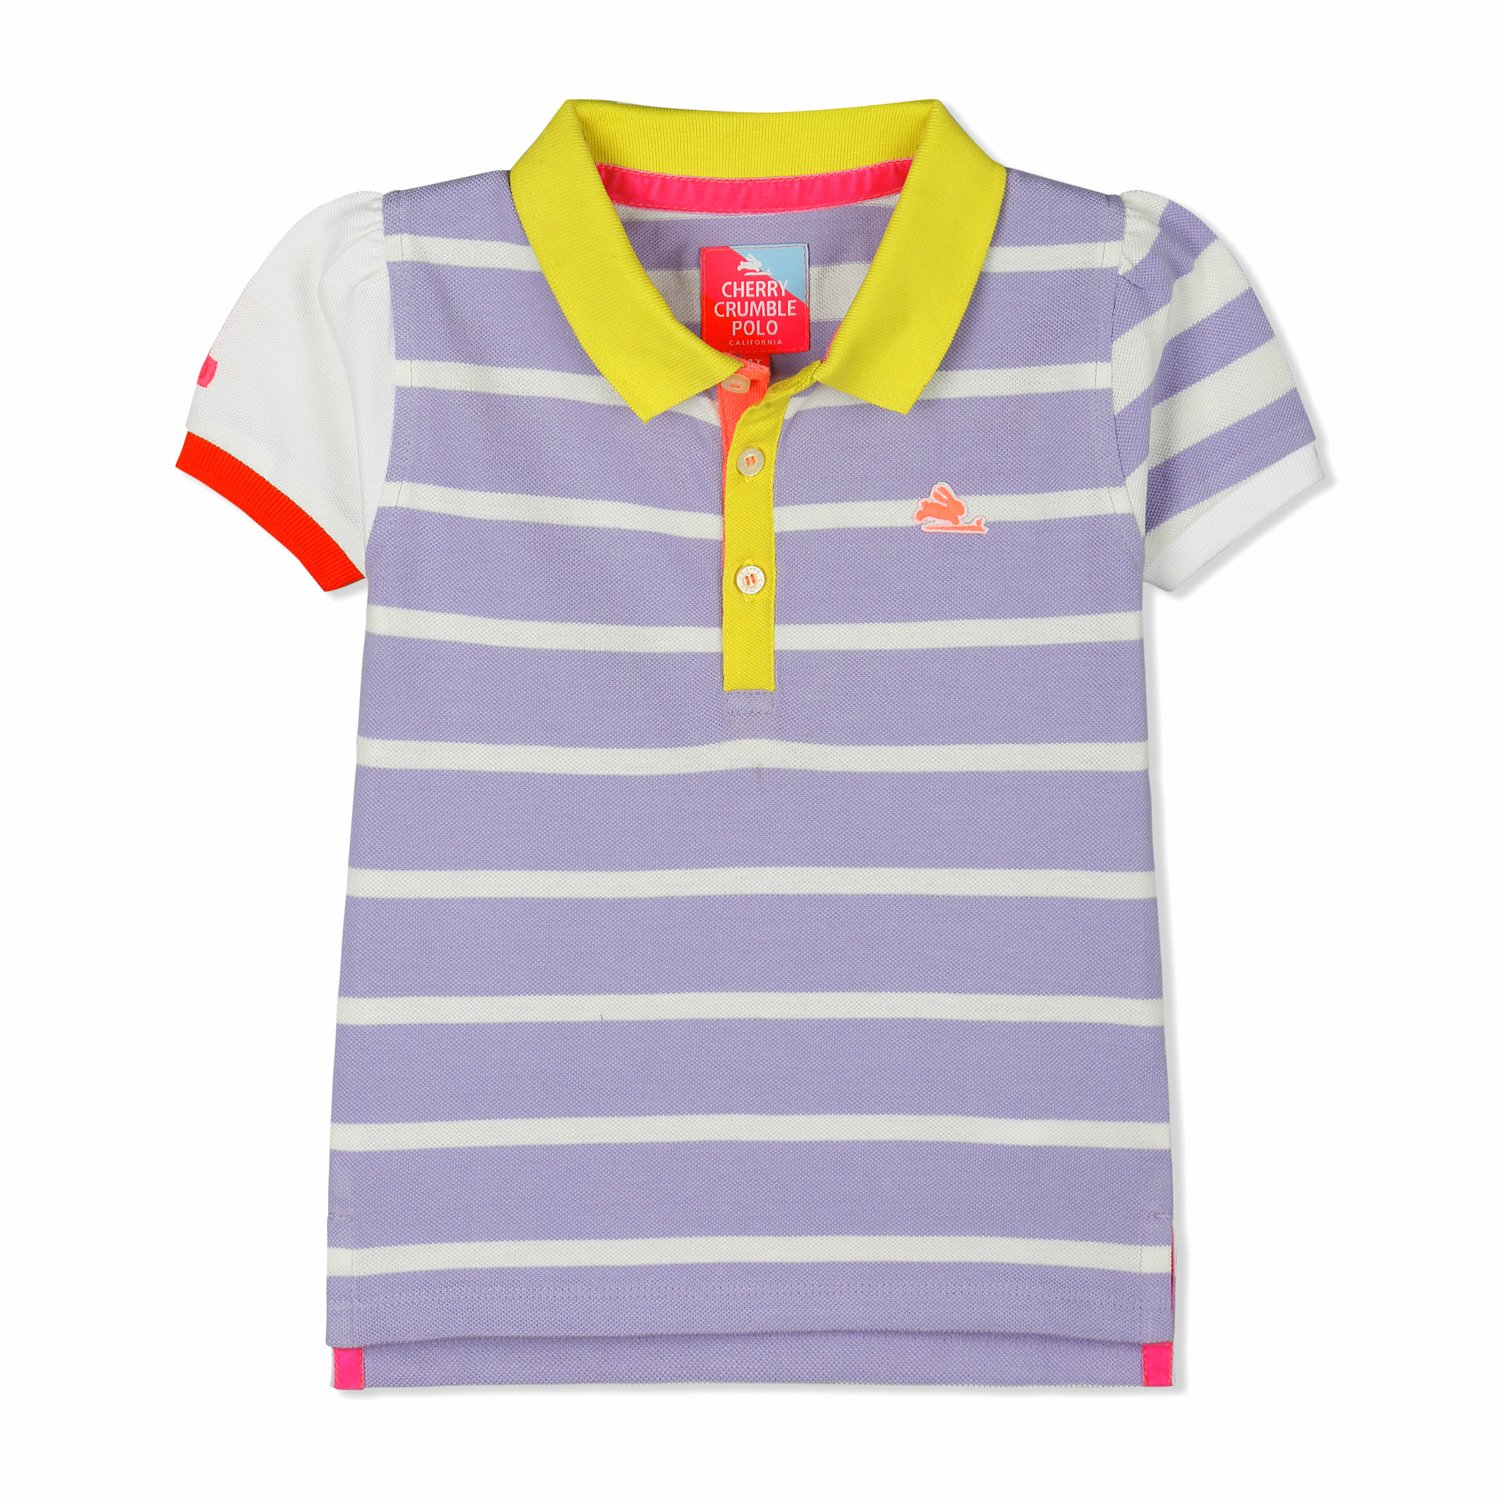 35a4bfb4 Cherry Crumble California Baby Girl Casual Polo T-Shirt: Amazon.in:  Clothing & Accessories